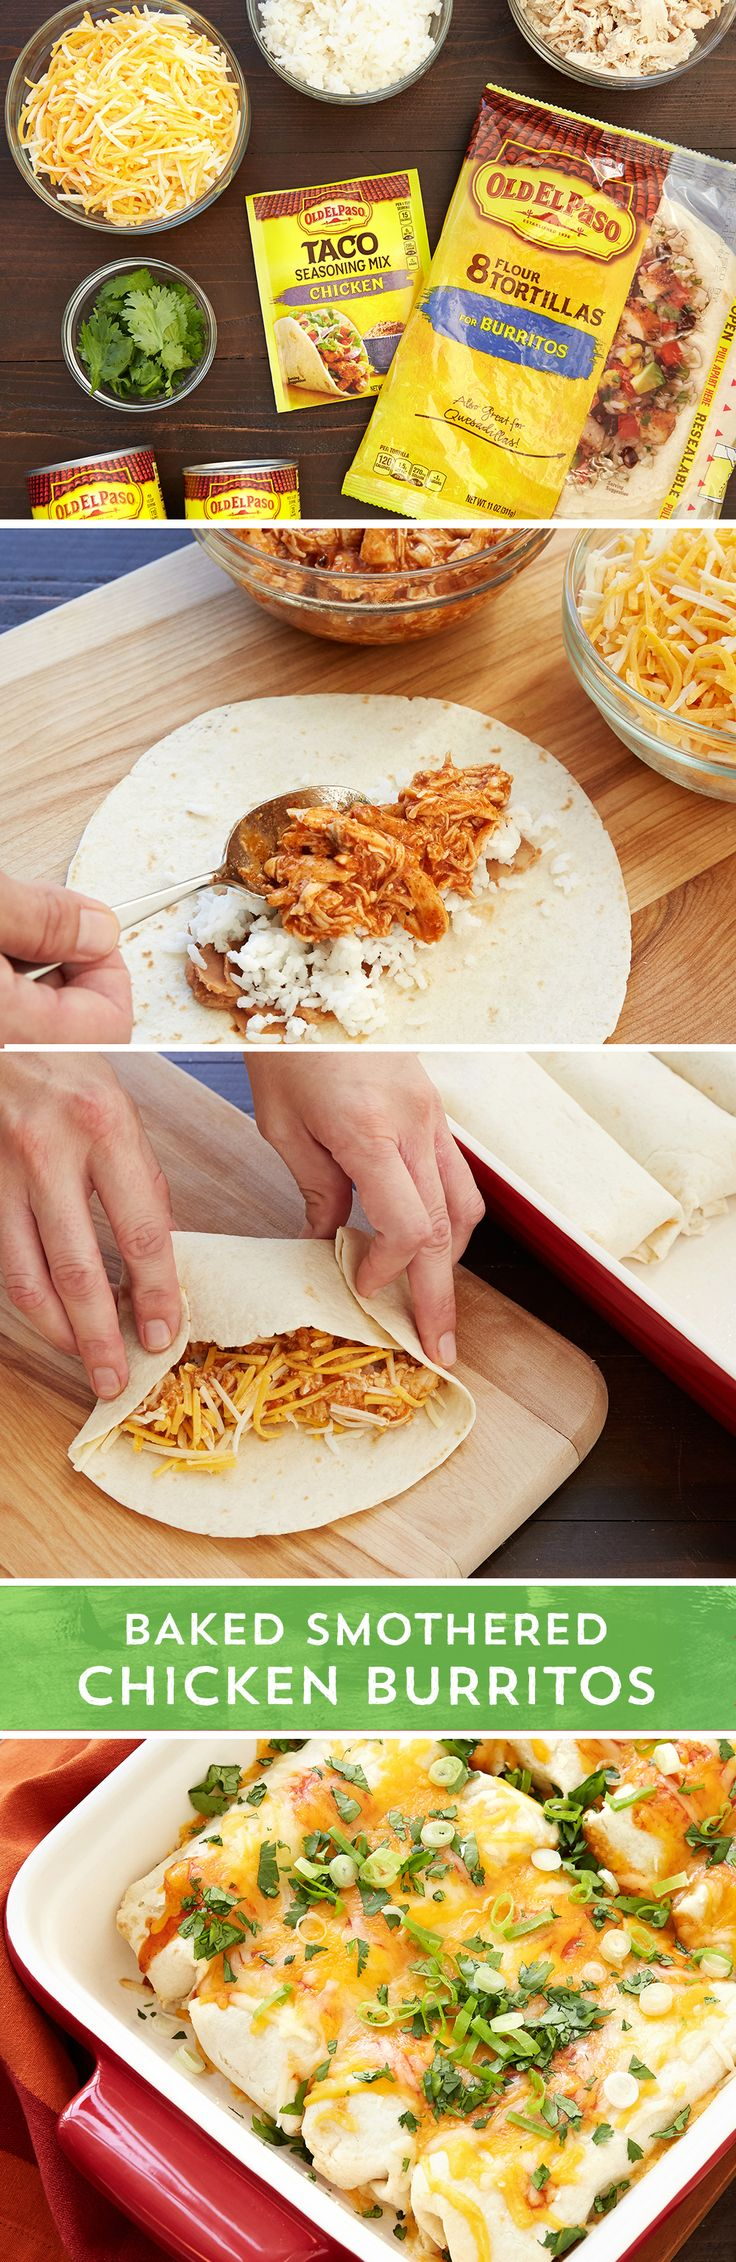 Love burritos and enchiladas? Please everyone with these easy Baked Smothered Chicken Burritos perfect for a crazy weeknight. Combine shredded chicken with Old El Paso™ enchilada sauce and Old El Paso™ chicken taco seasoning for a tasty burrito filling. Bake for 35 minutes while you get other stuff done and then drizzle with more Old El Paso™ Enchilada sauce and cheese to finish off these easy burritos. Best of all they can be made and frozen before baking and pulled out for a busy…